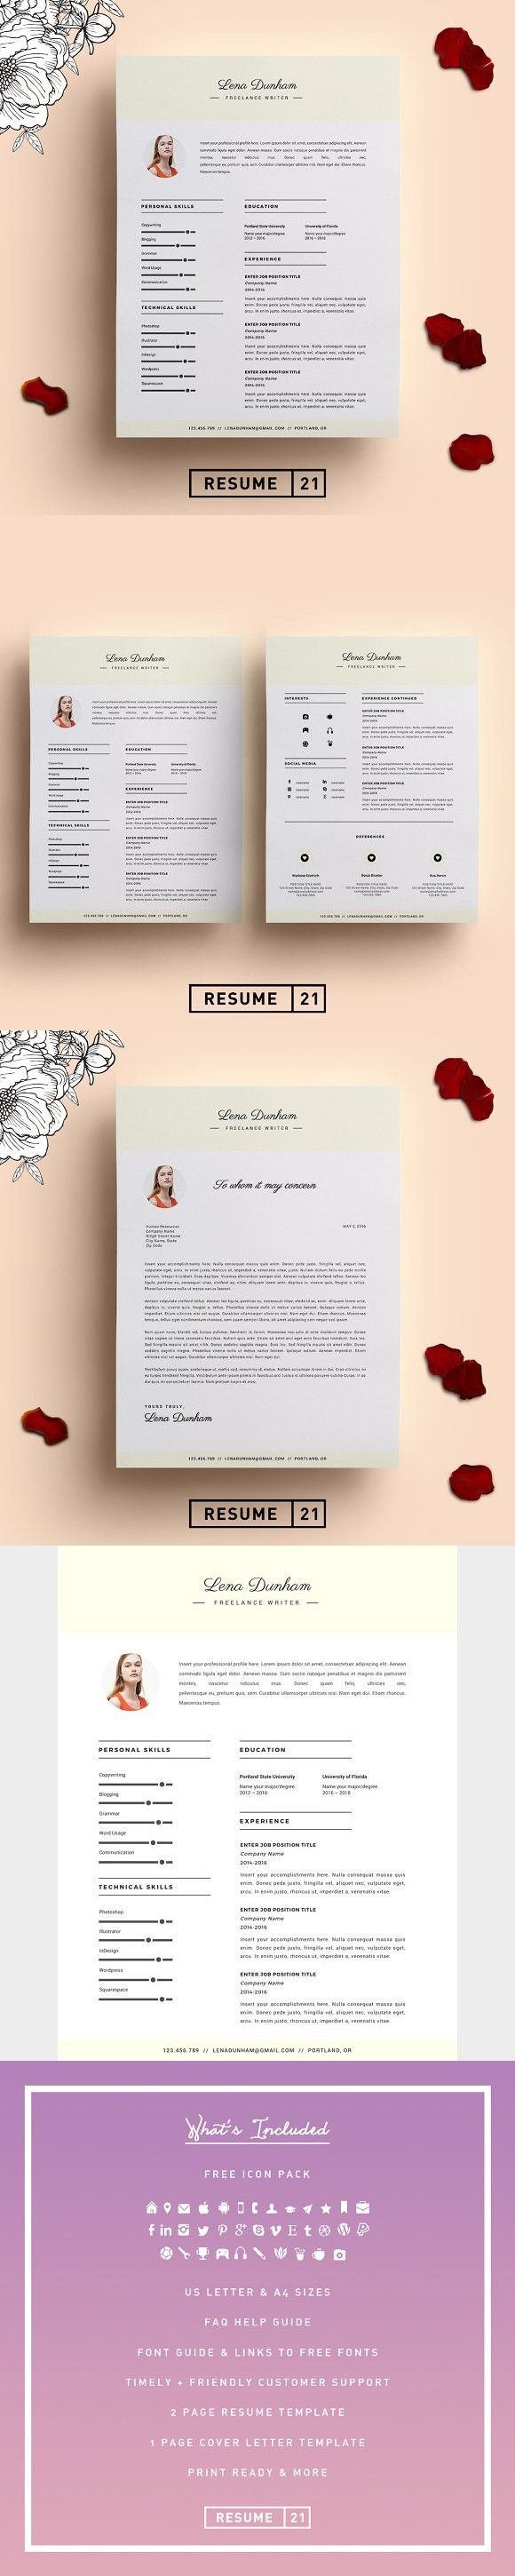 Nice 1 Page Resume Format Free Download Tall 10 Envelope Template Solid 15 Year Old Resume Sample 18th Invitation Templates Youthful 1and1 Templates Bright2 Binder Spine Template 236 Best Images About Resume Design \u0026 Layout On Pinterest | Resume ..